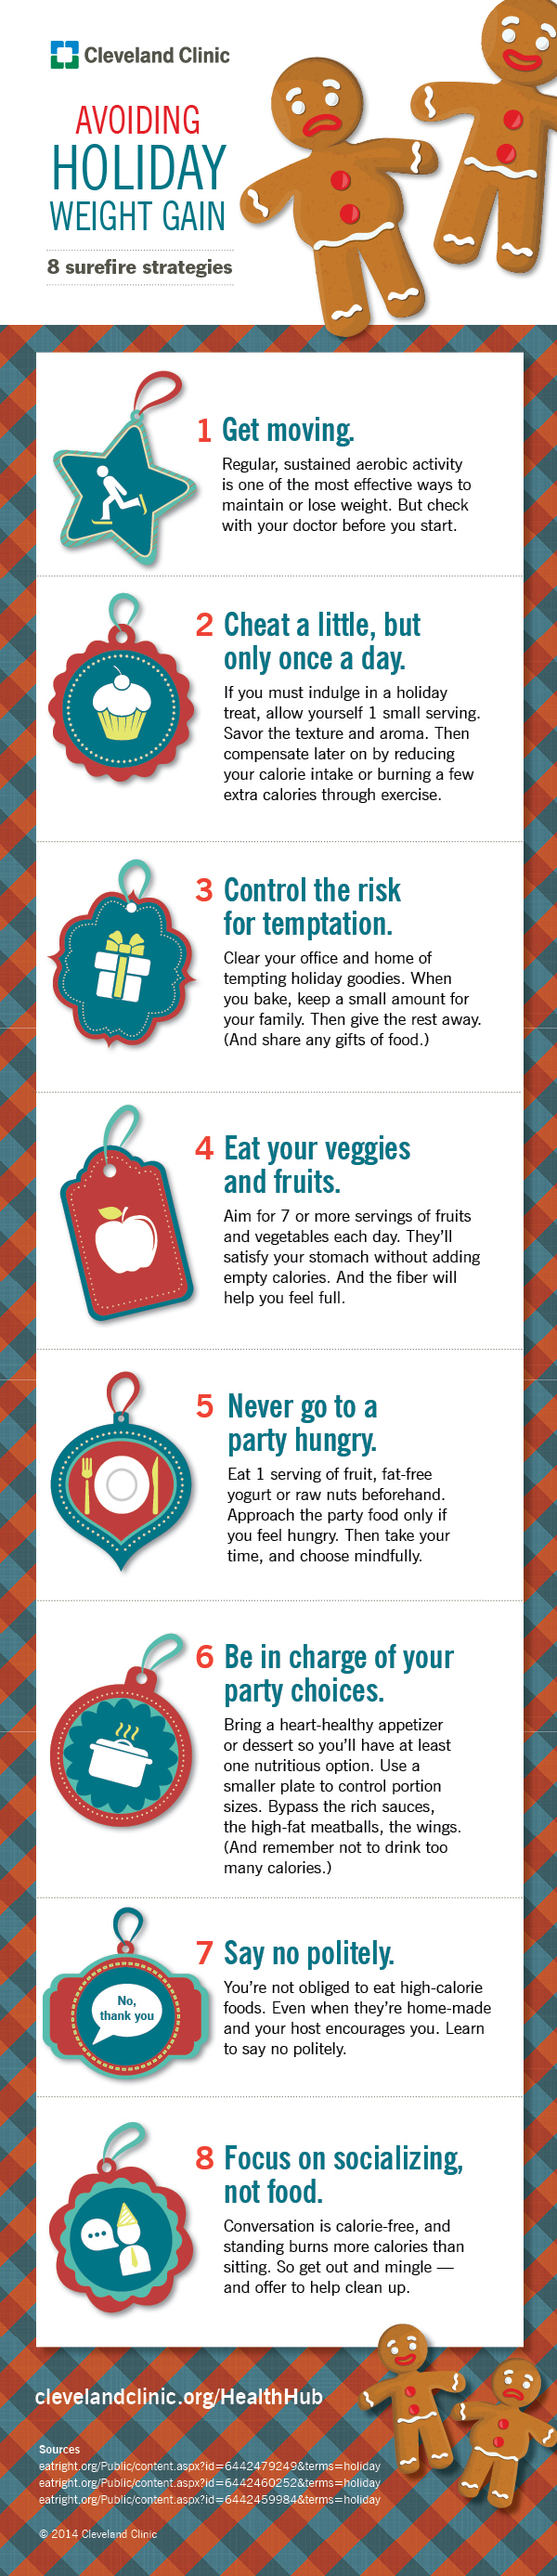 Avoid Holiday Weight Gain With These Surefire Hacks Infographic